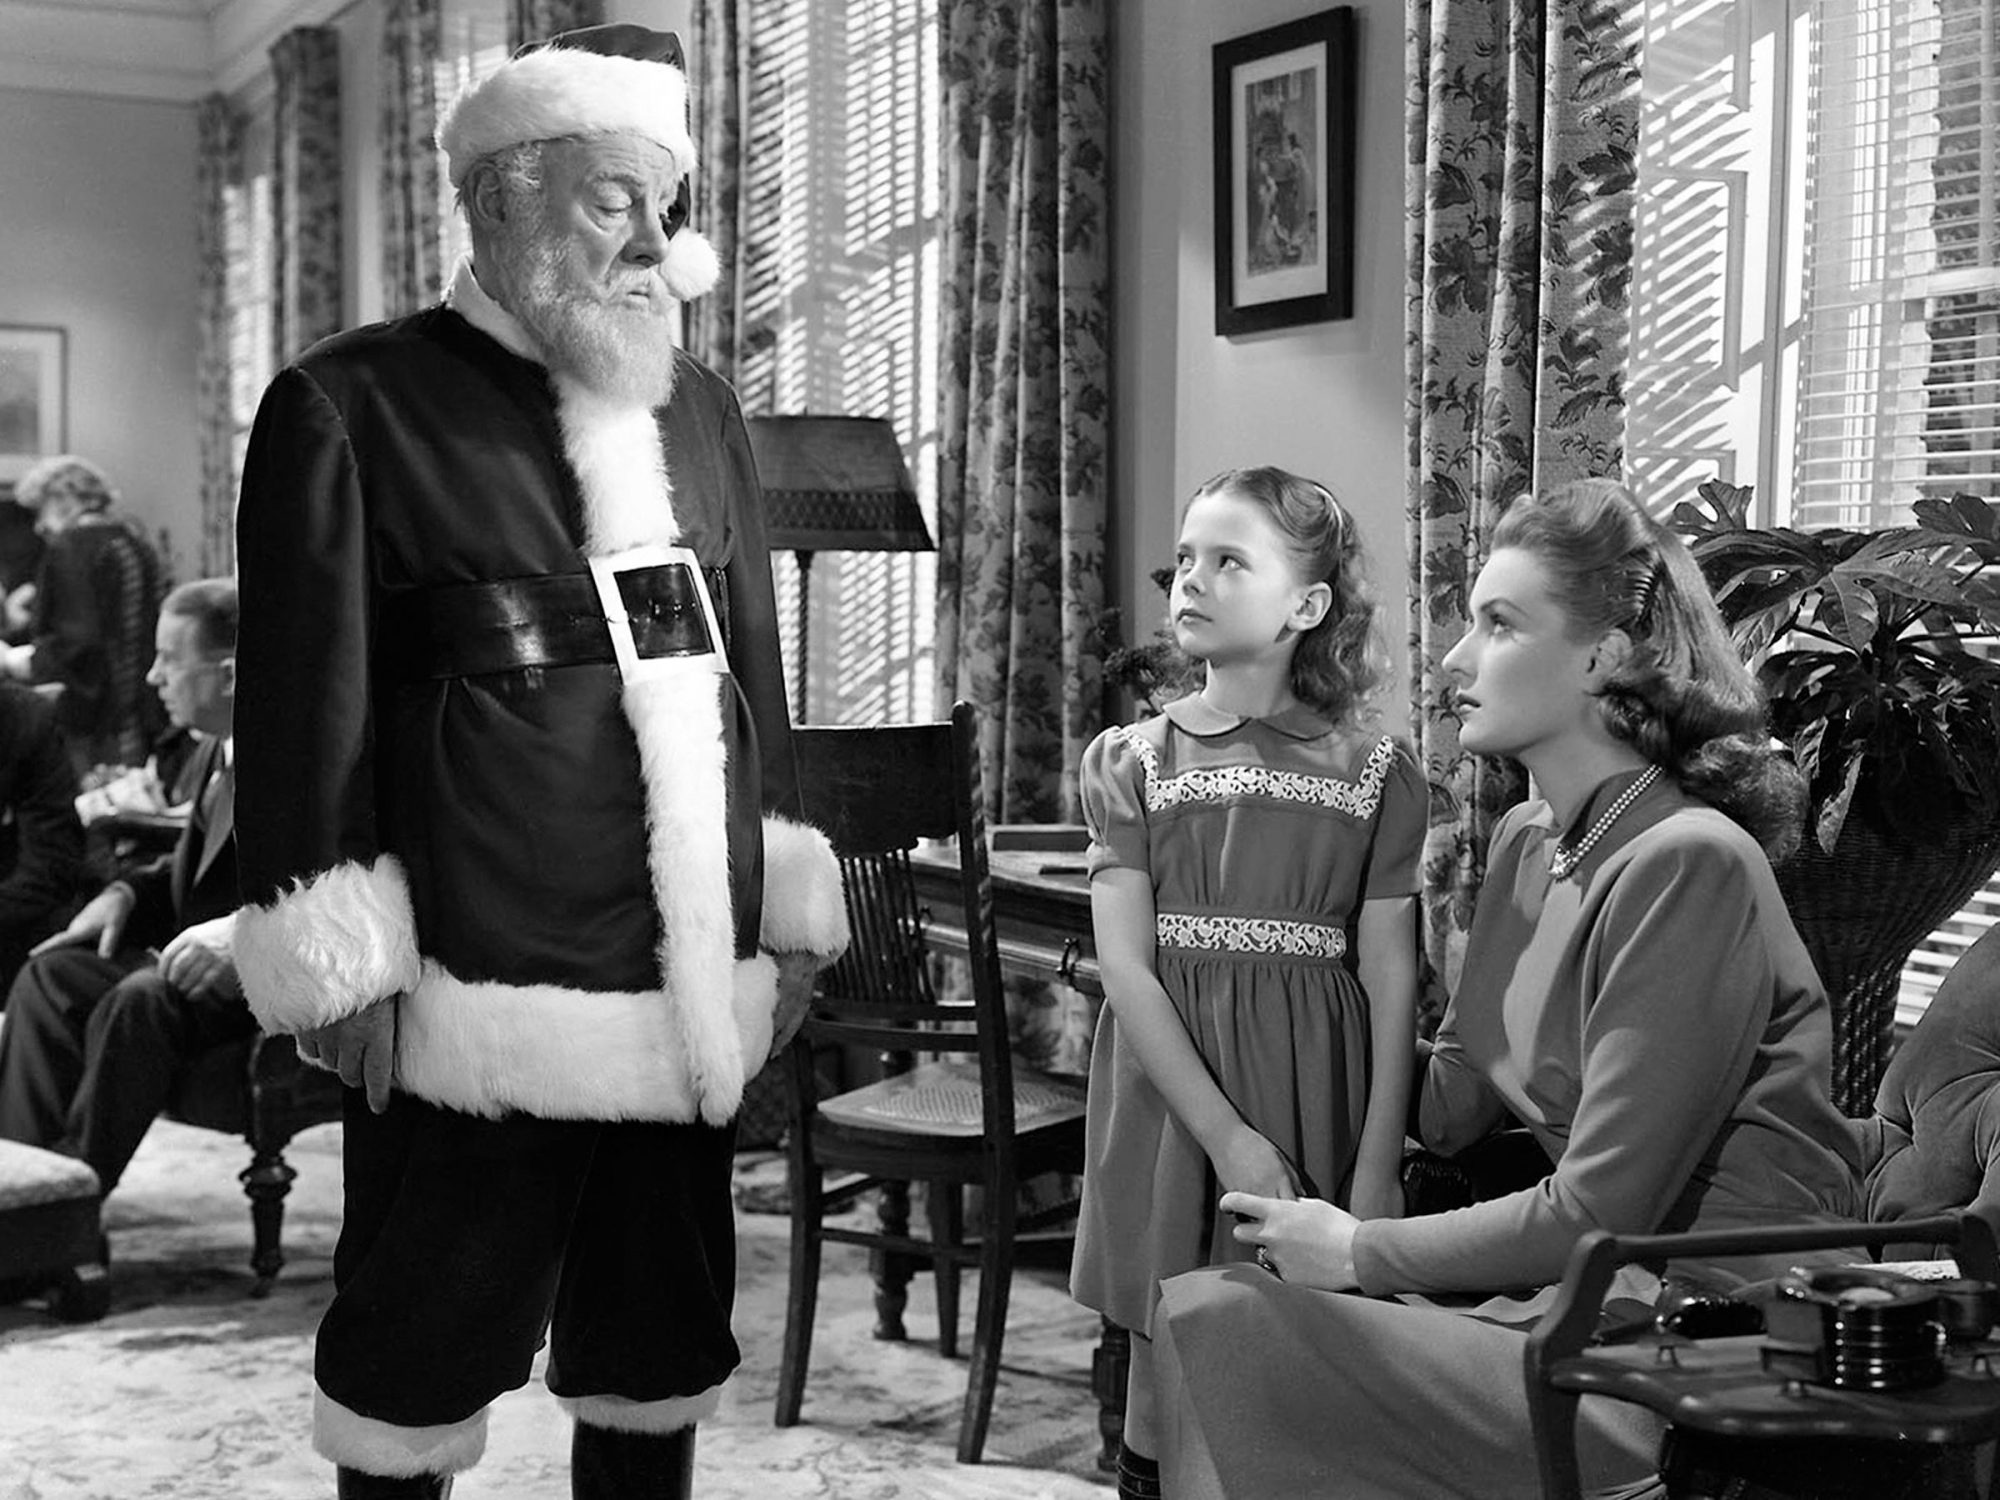 15. Miracle on 34th Street (1947)